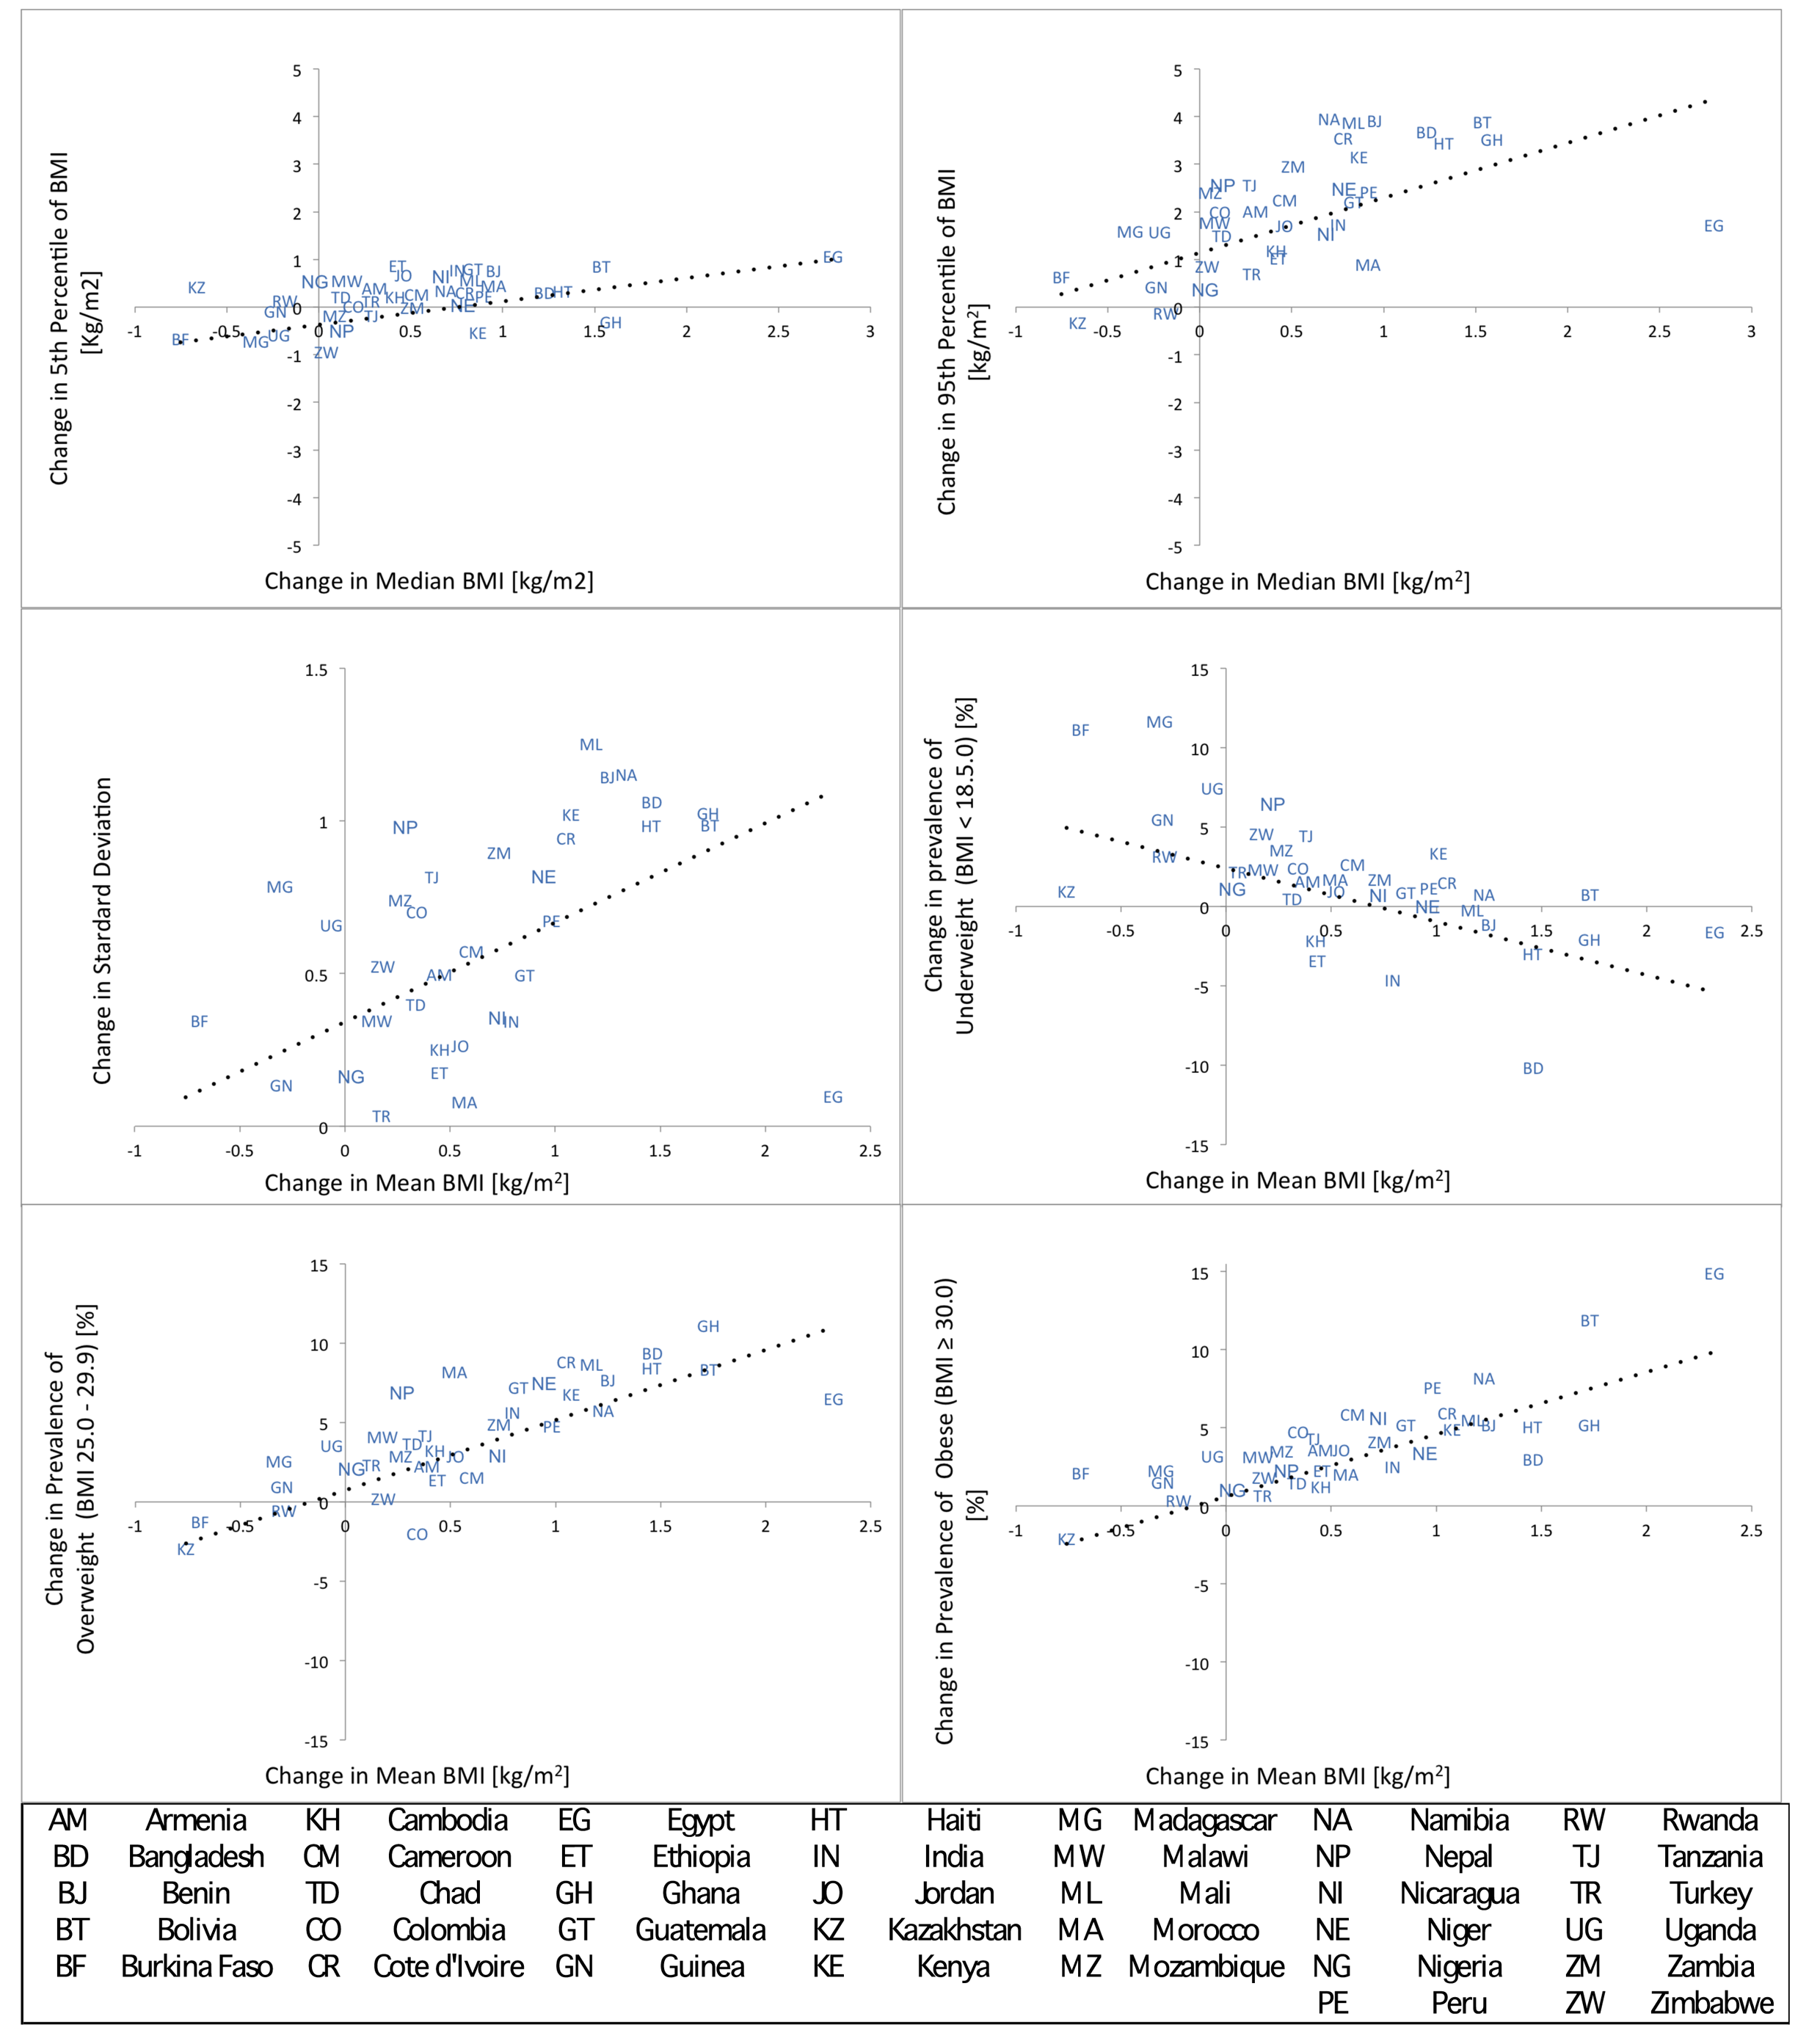 Change in specific parameters of the BMI distribution (5th and 95th percentile and SD) or categories of BMI (underweight, overweight, obese) versus change in mean or median BMI.